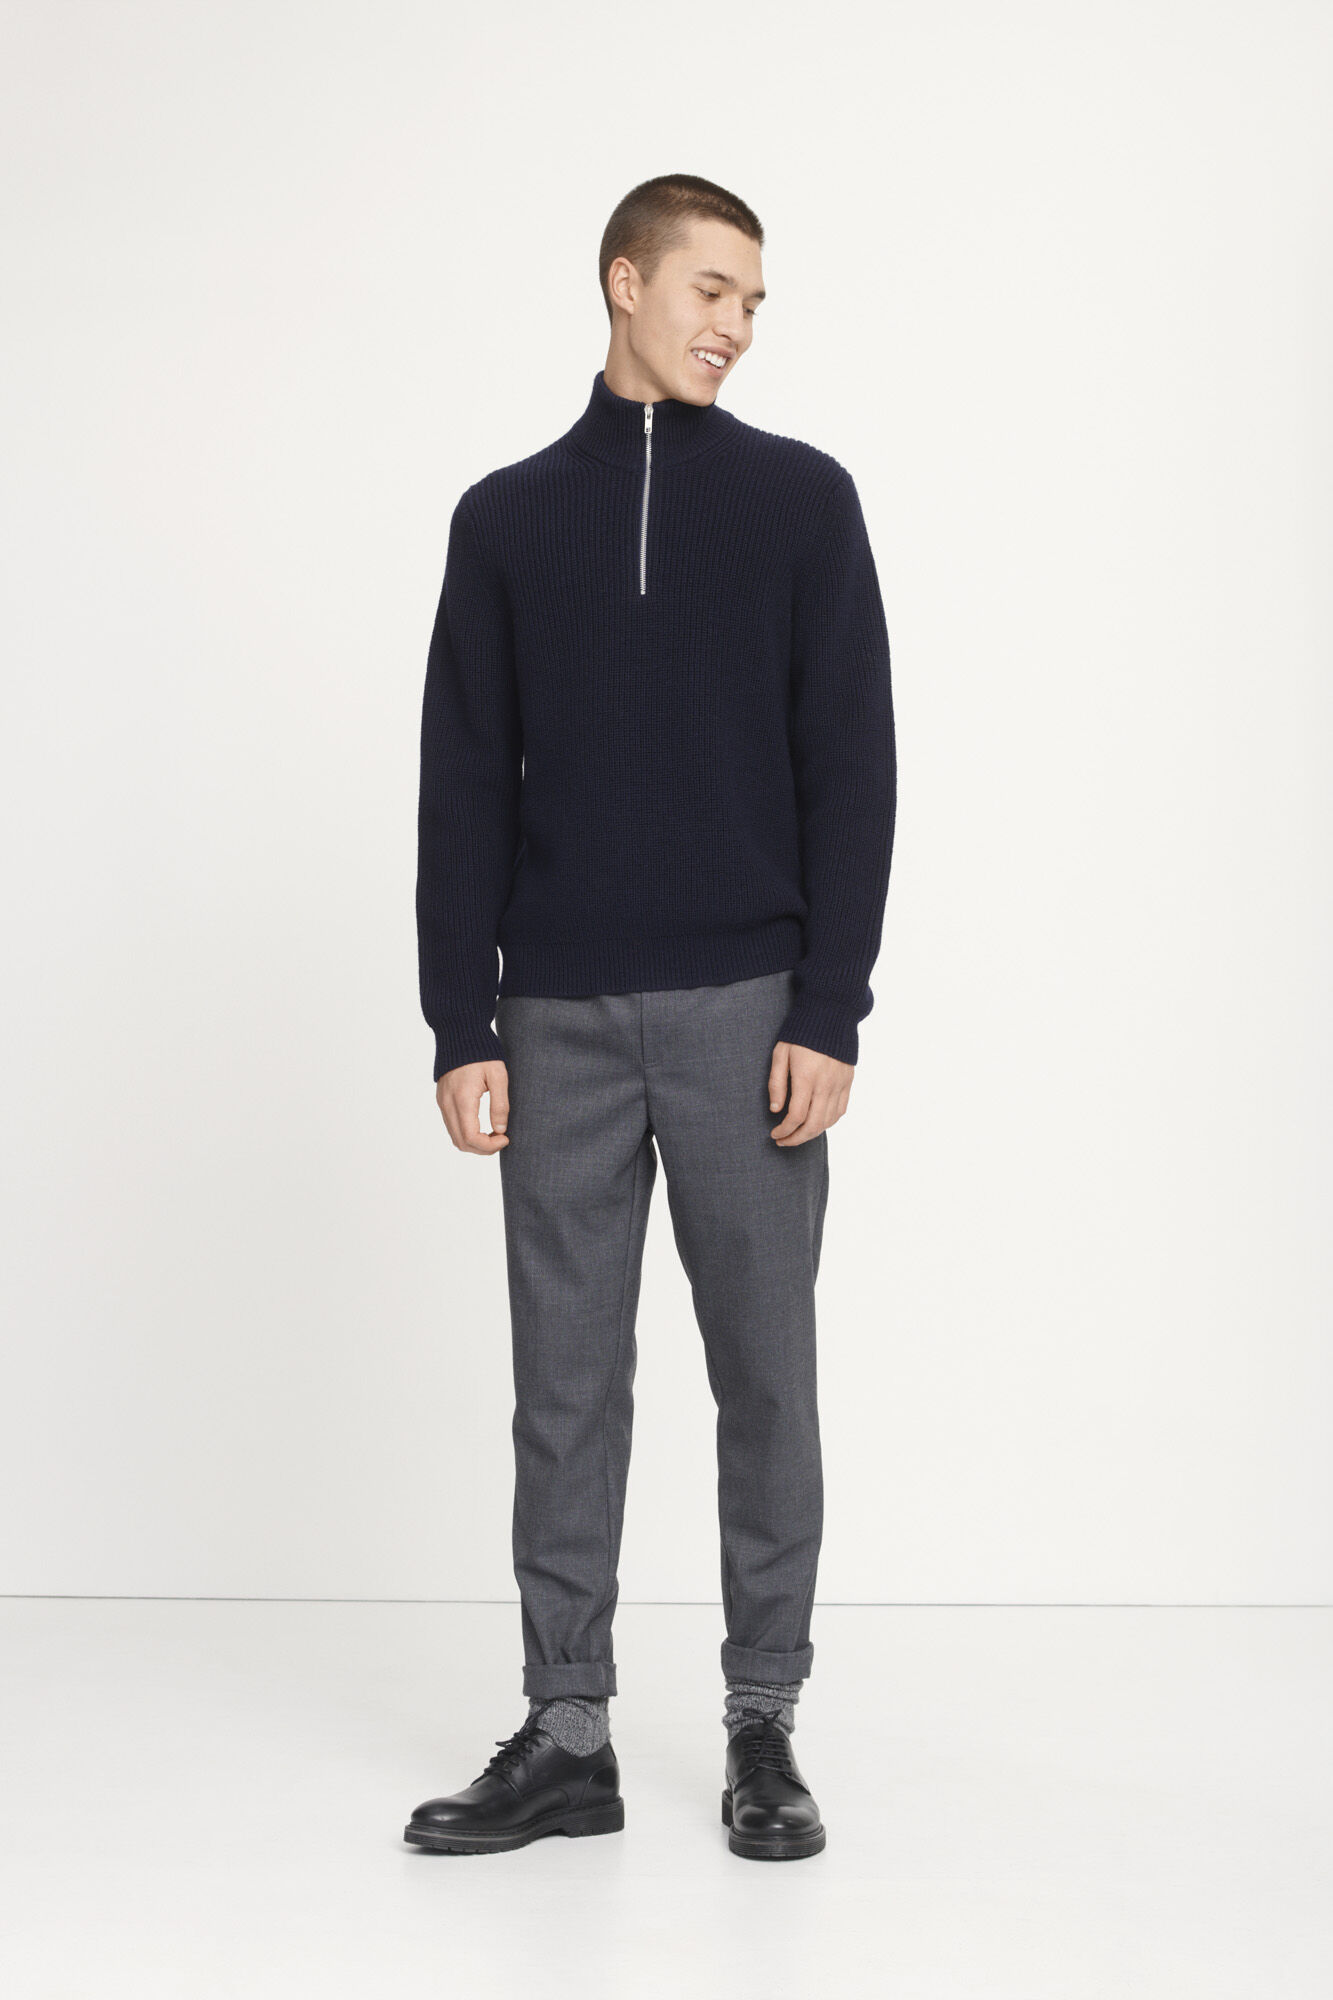 Andy x trousers 11058